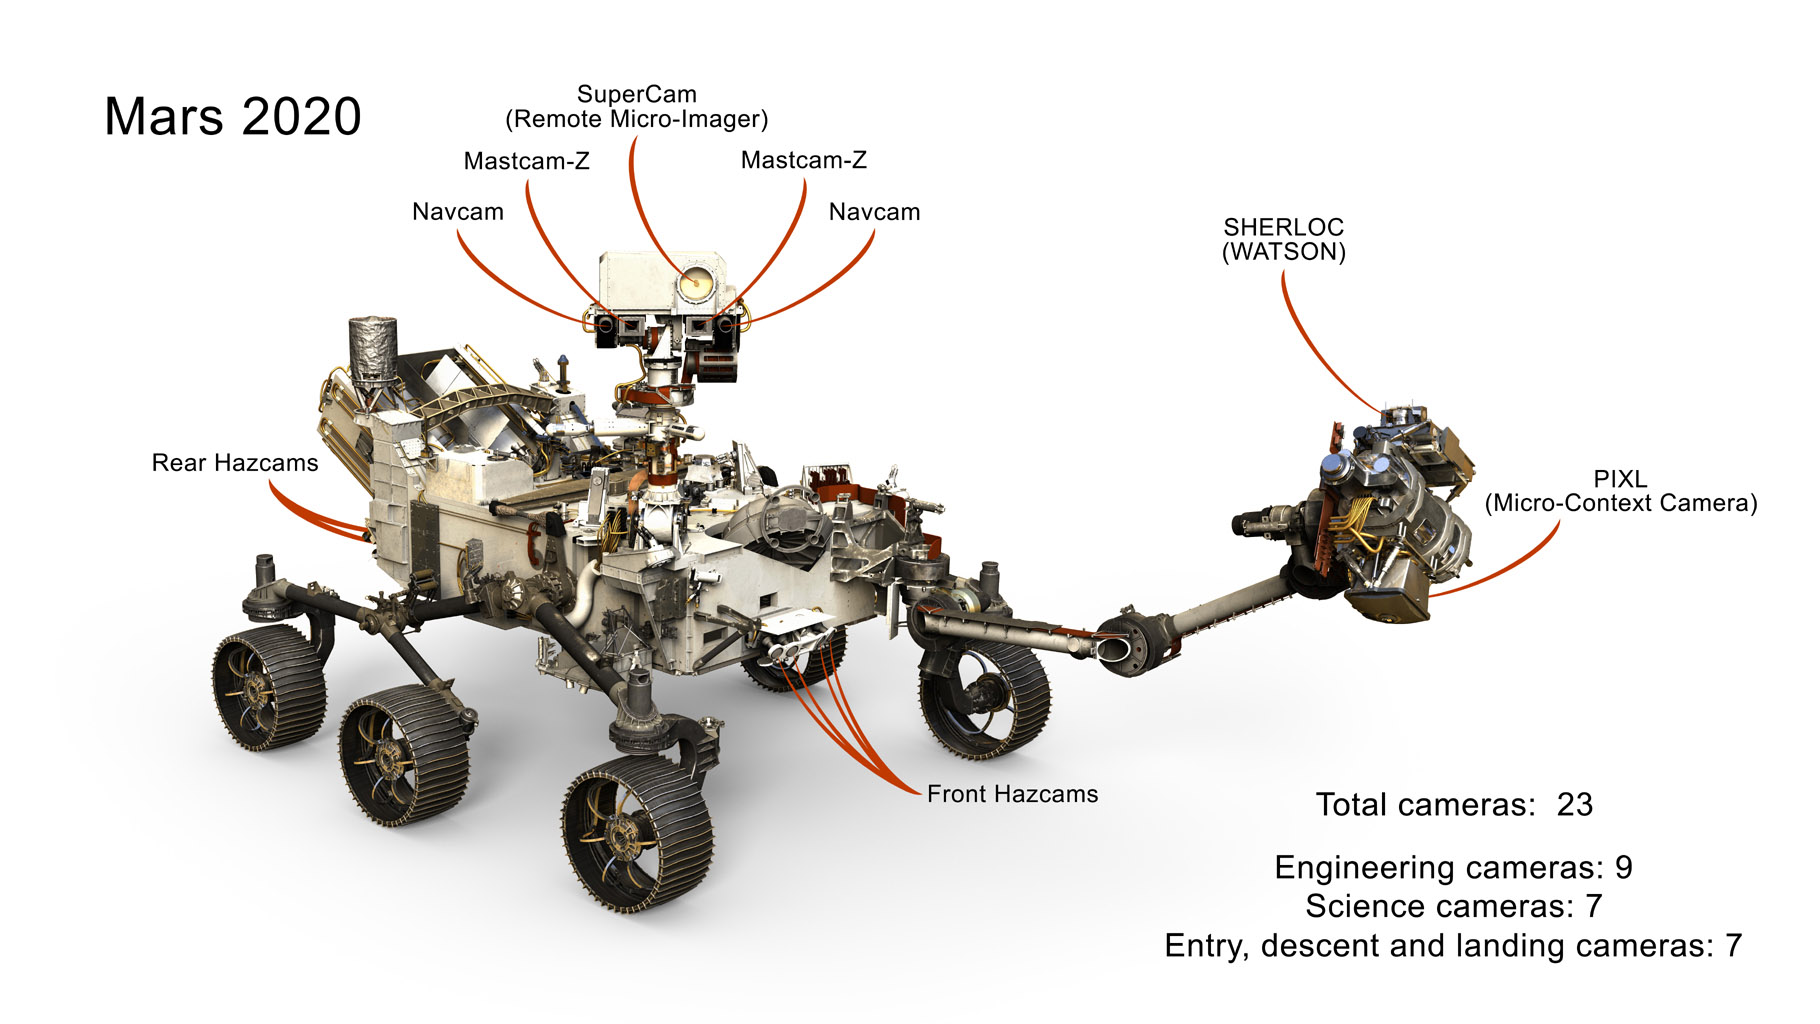 This image presents a selection of the 23 cameras on NASA's 2020 Mars rover. Many are improved versions of the cameras on the Curiosity rover, with a few new additions as well.